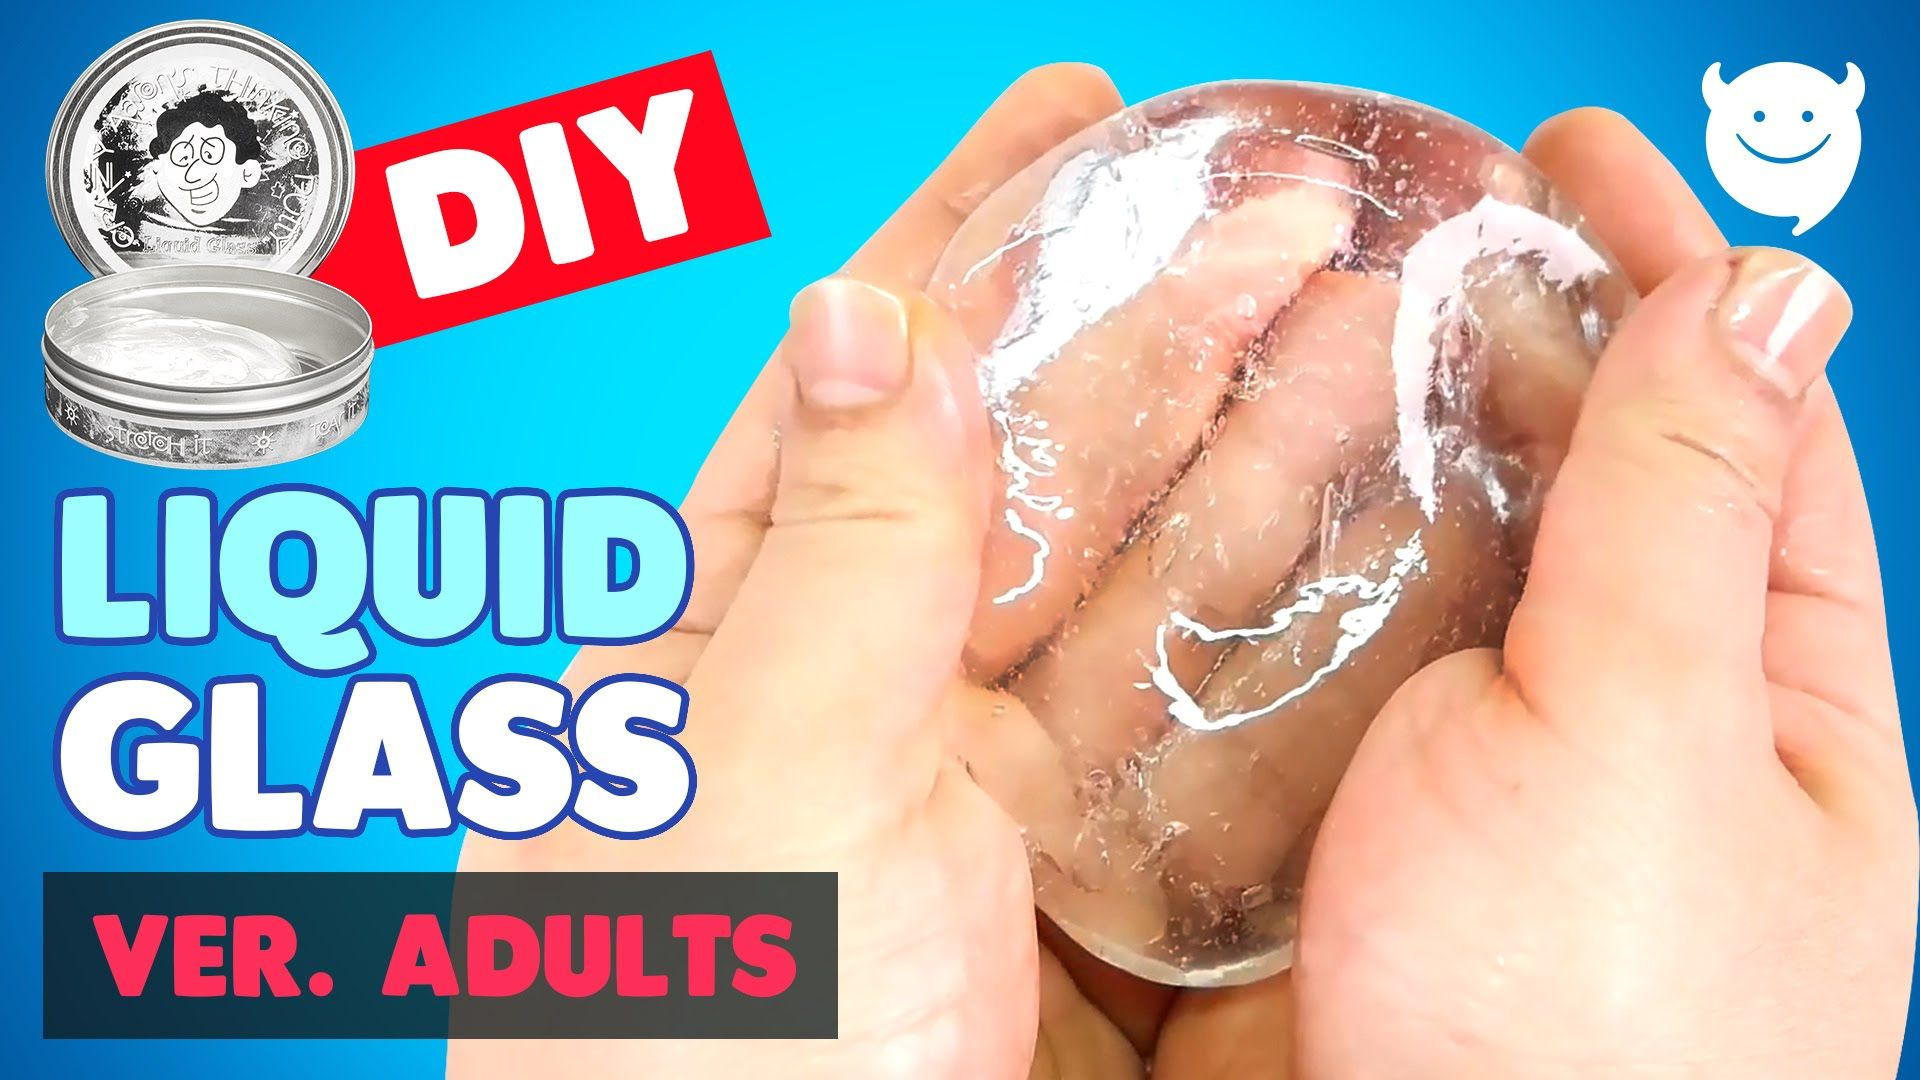 Diy liquid glass putty borax clear slime make slime diy liquid glass putty borax clear slime ccuart Image collections